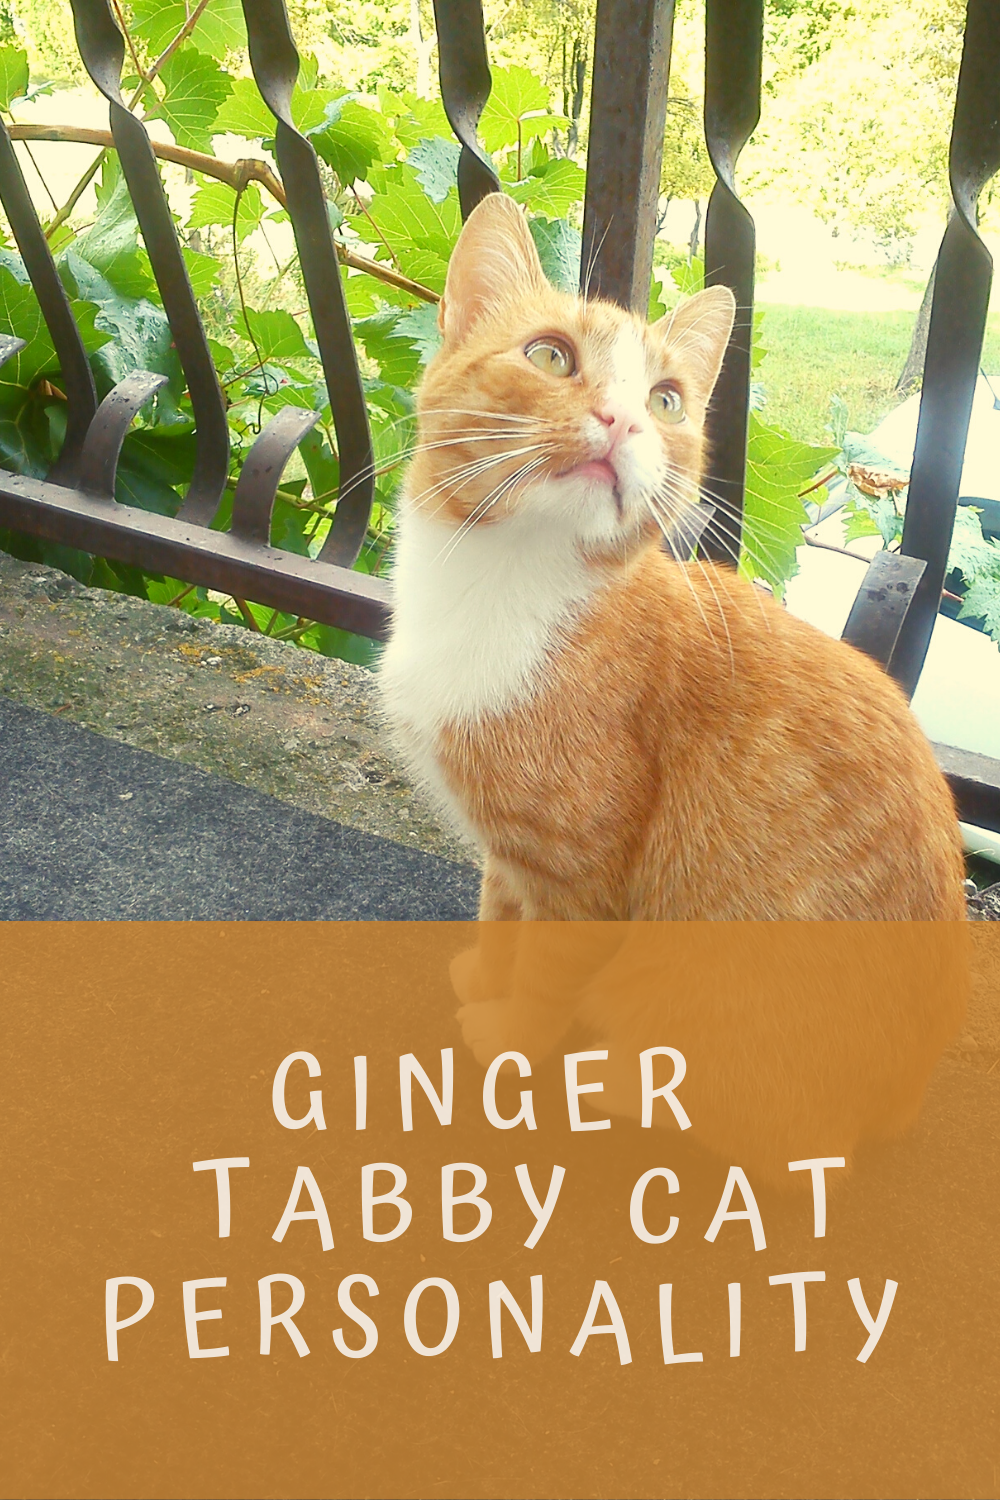 Ginger Tabby Personality in 2020 Cat personalities